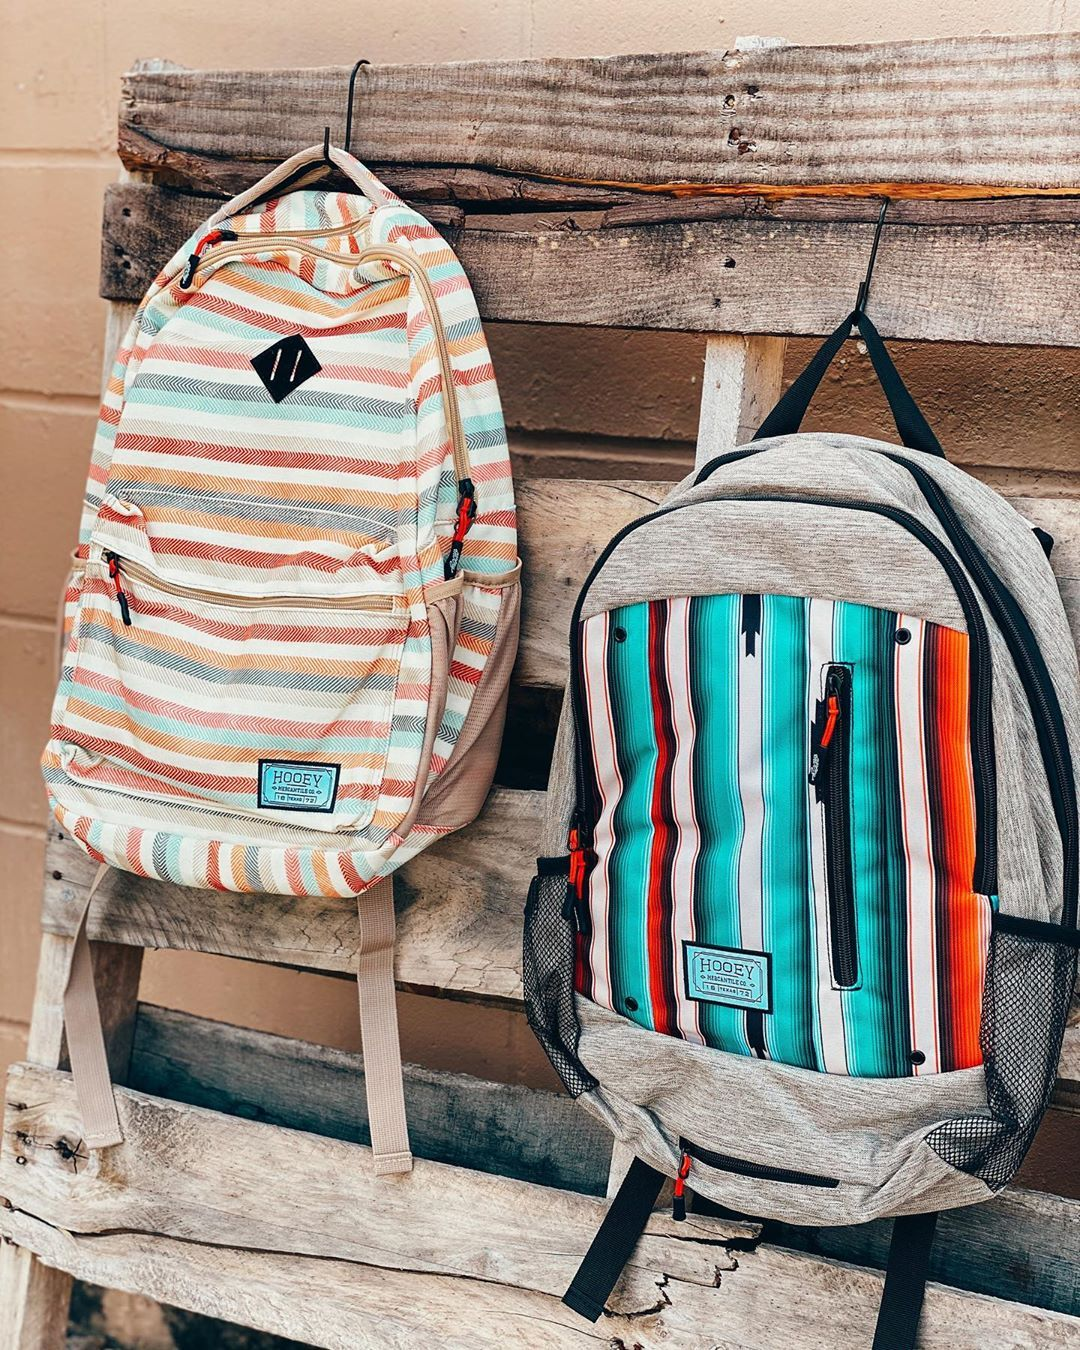 the perfect backpack for any occasion 🙌🏼 #shopccrb #classyfashion #hooey  #hooeybackpacks #backtoschool #aztecprint in 2020 | Backpacks, Aztec print,  Hooey